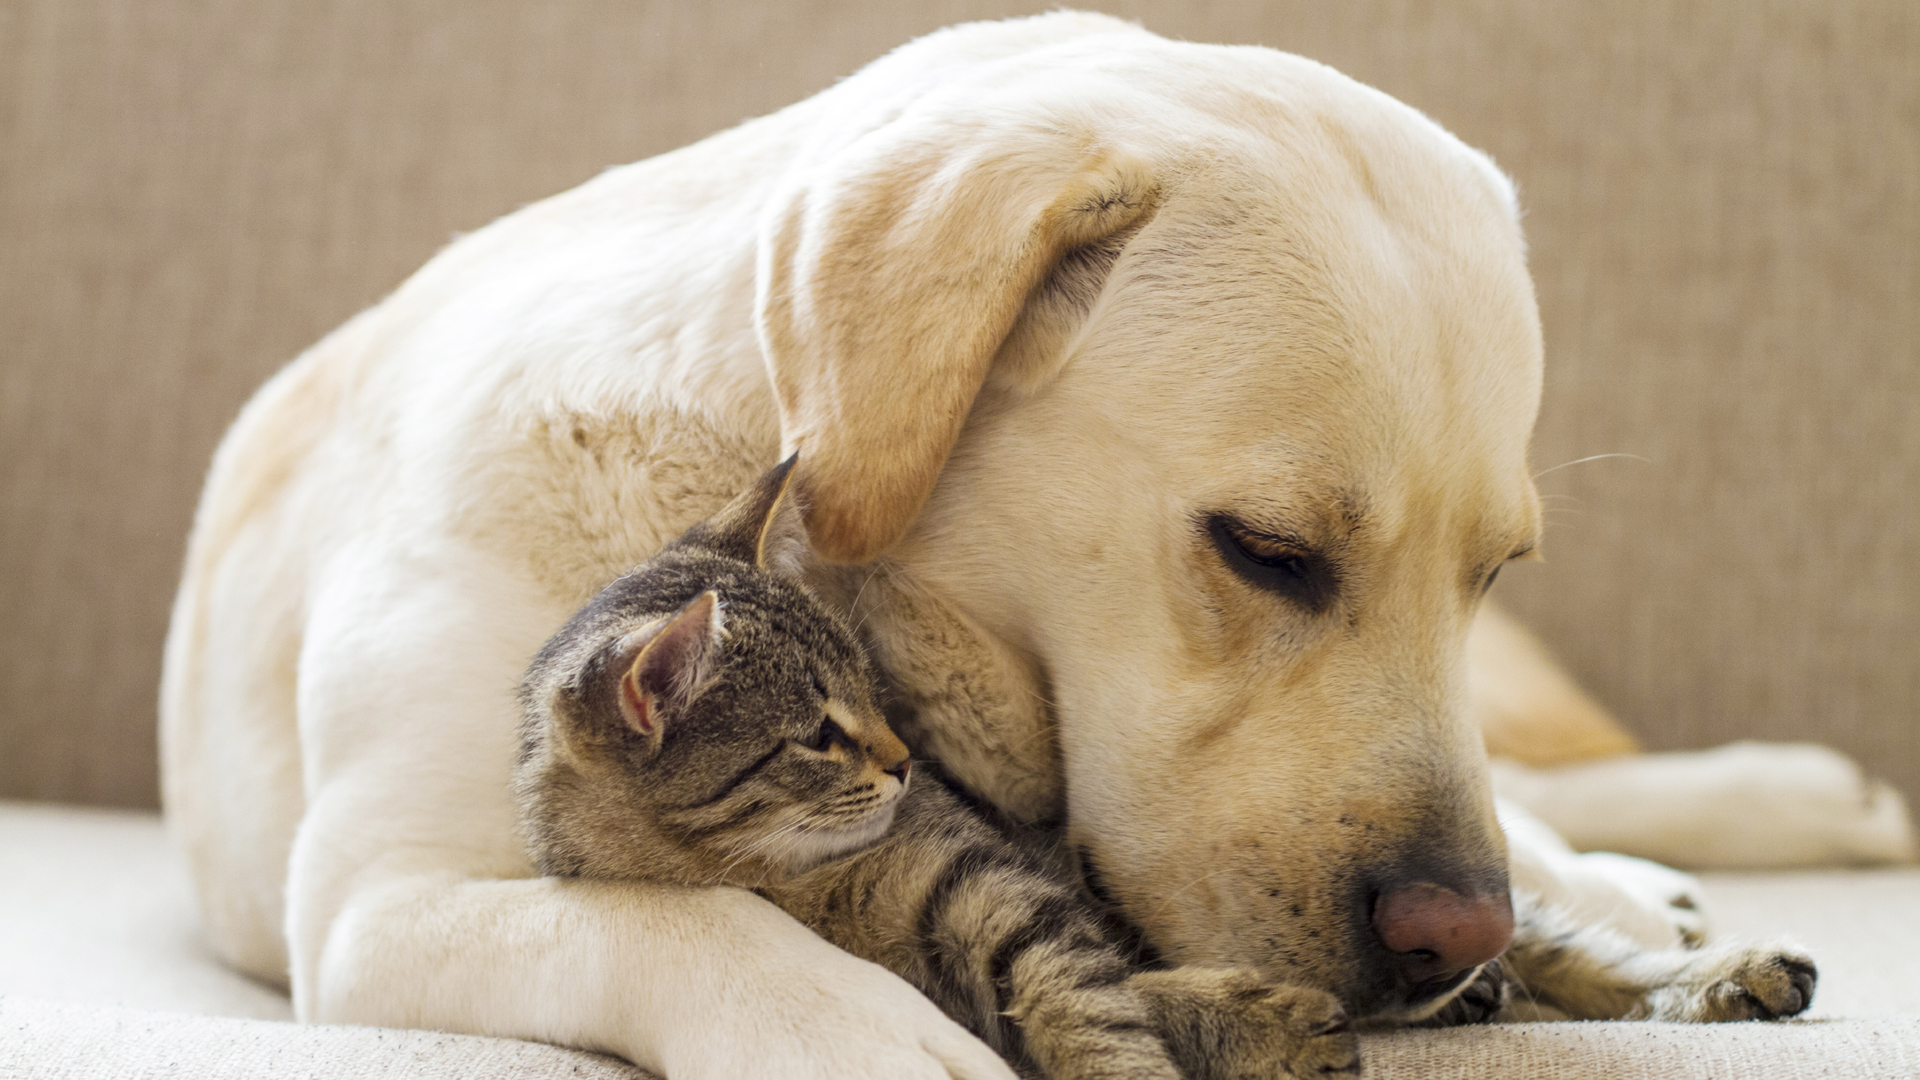 Get All Your Pet Stuff - Shop For Pet Products Online